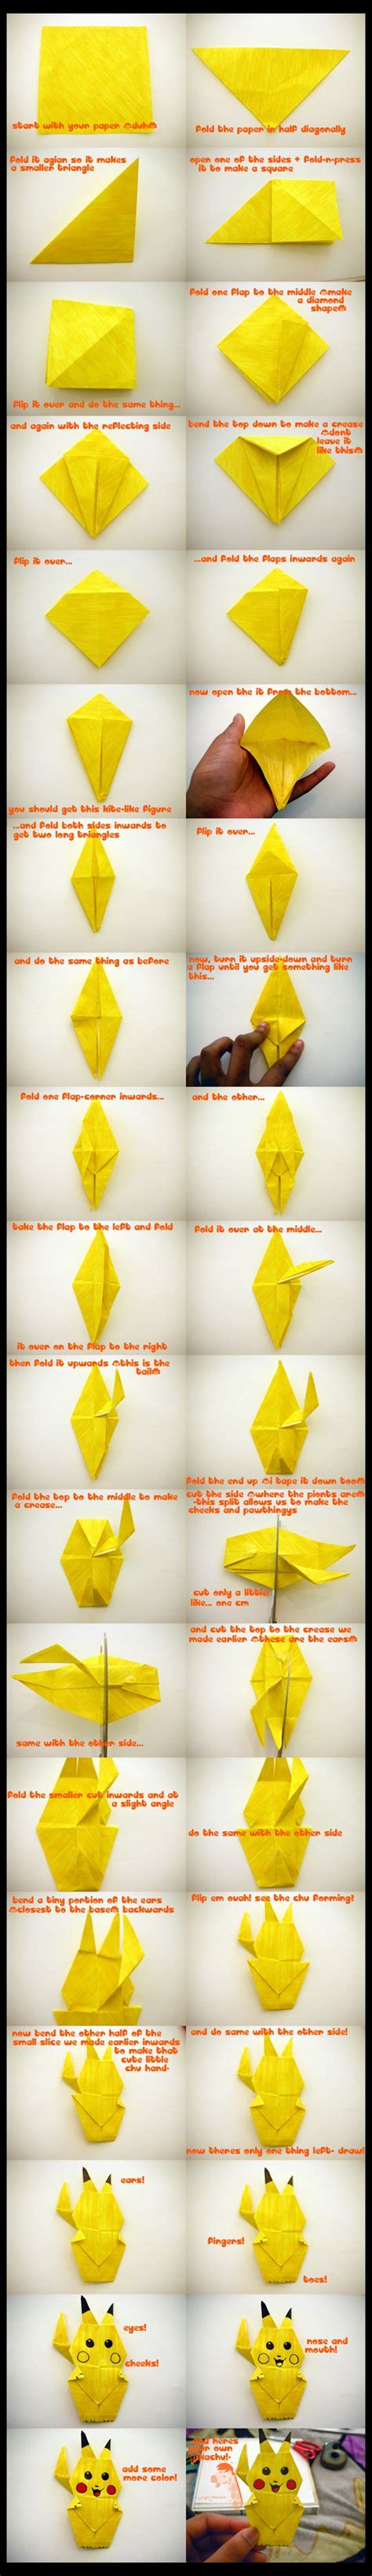 how to make a 3d origami pikachu how to make an origami pikachu bit rebels